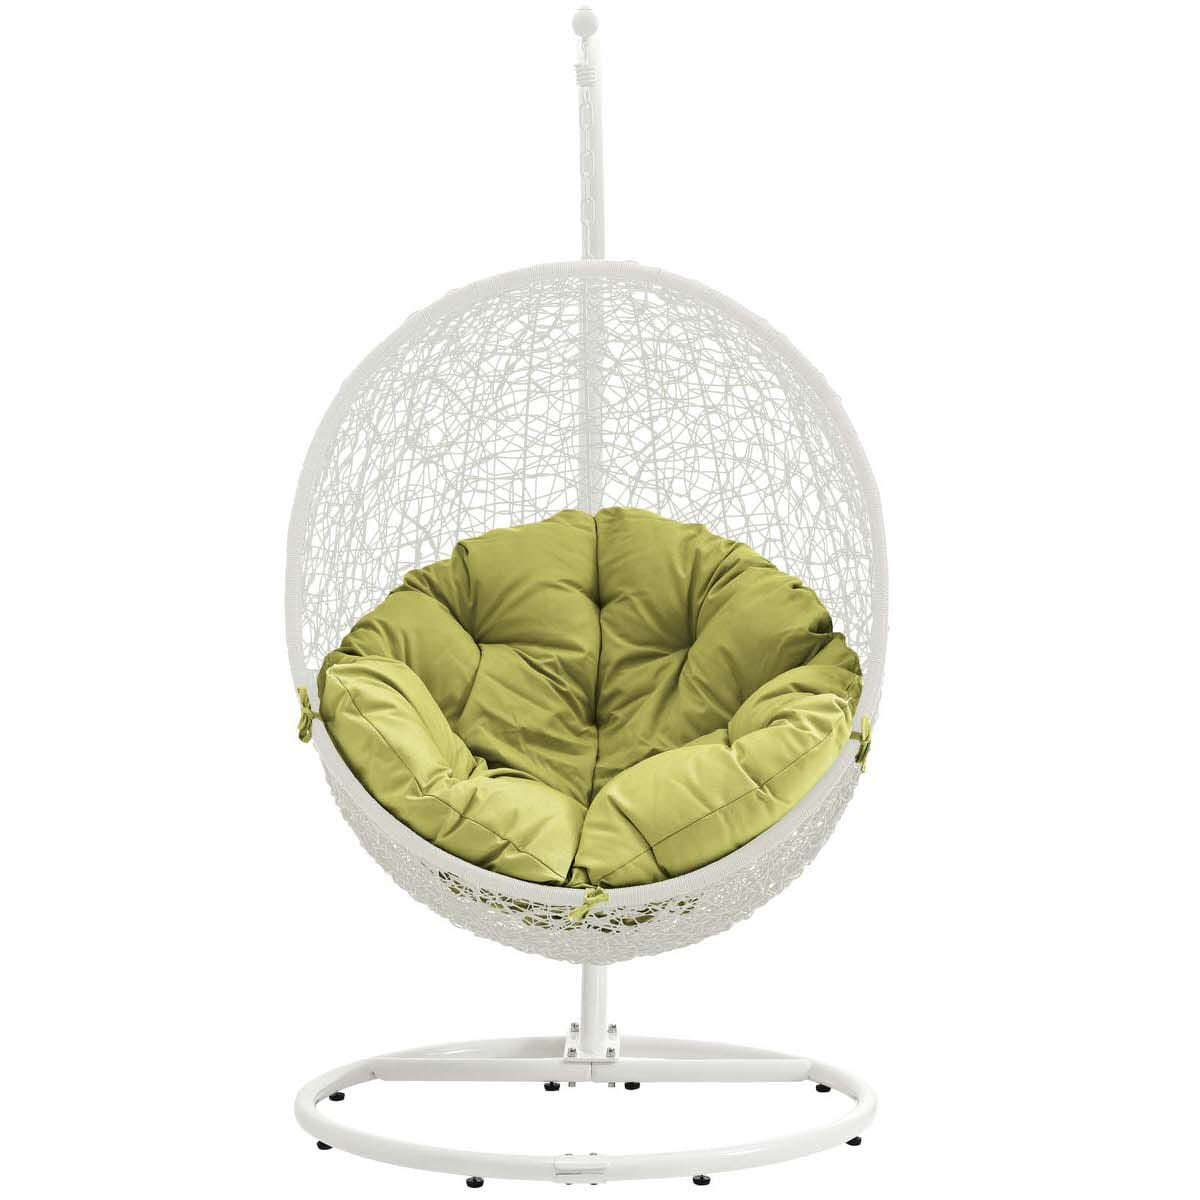 Hide Outdoor Patio Swing Chair With Stand White Peridot By Modern Living  (Modern Living)